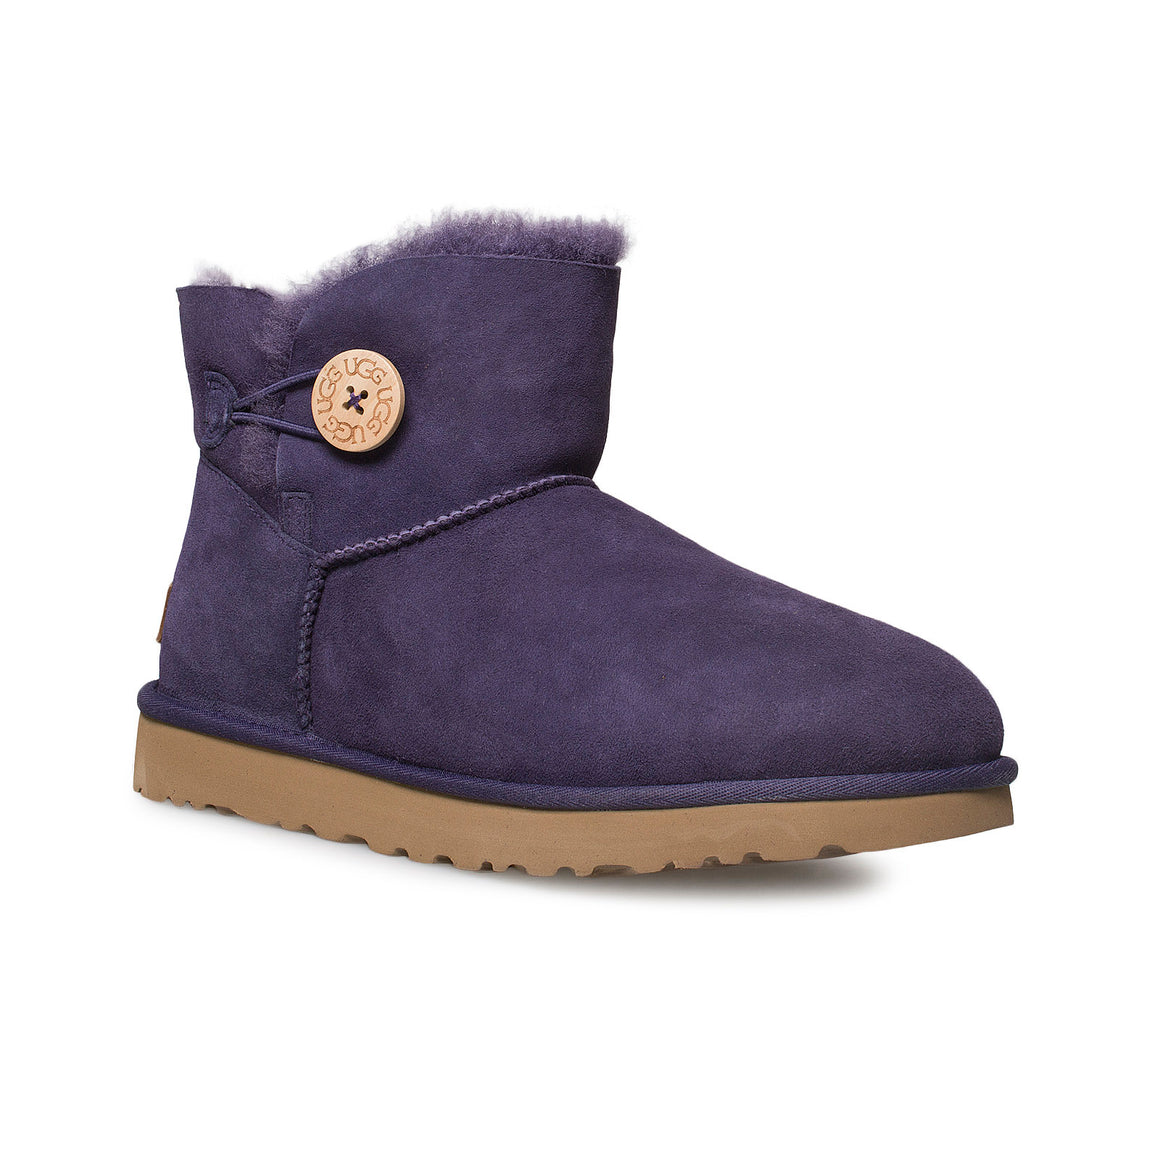 UGG Mini Bailey Button II Night Shade Boots - Women's